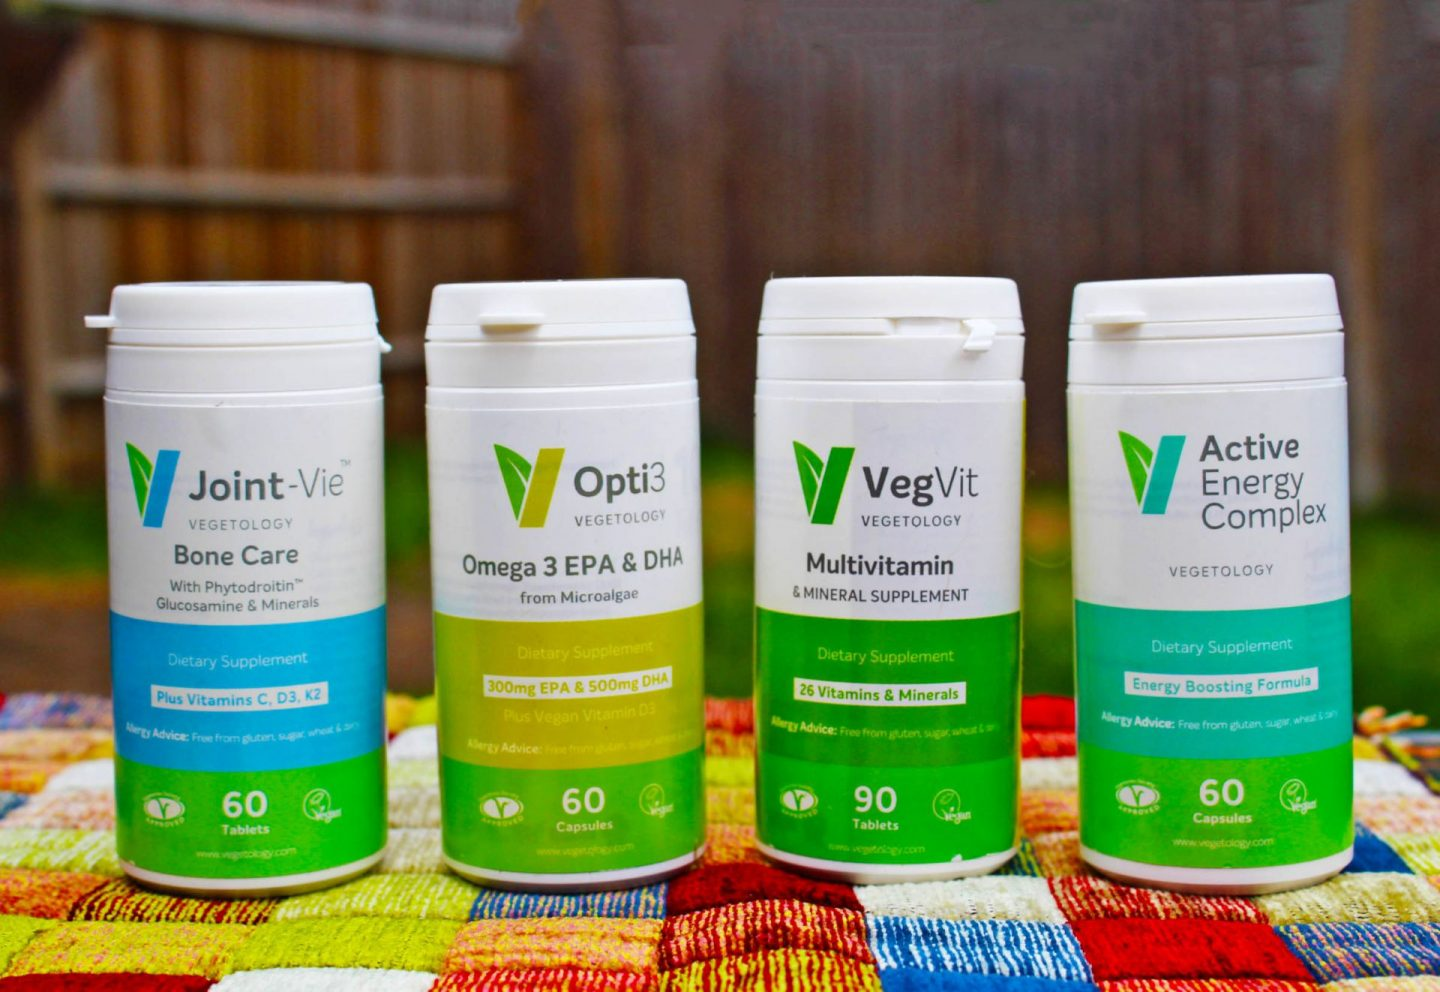 Range of health supplements from Vegetology